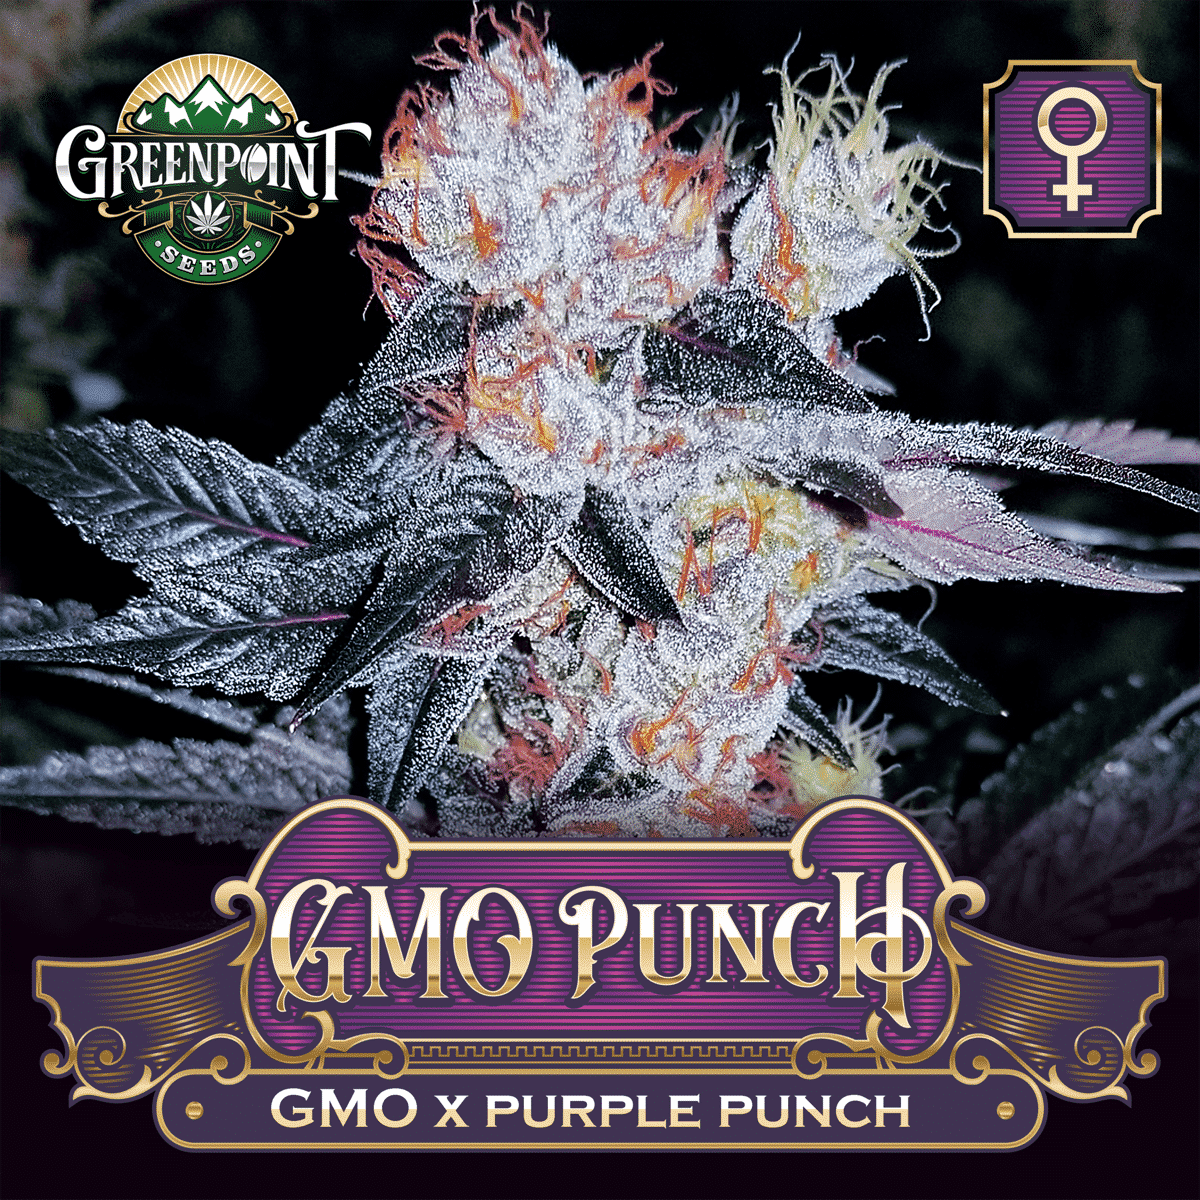 GMO x Purple Punch Feminized Seeds - GMO Punch Cannabis Seeds